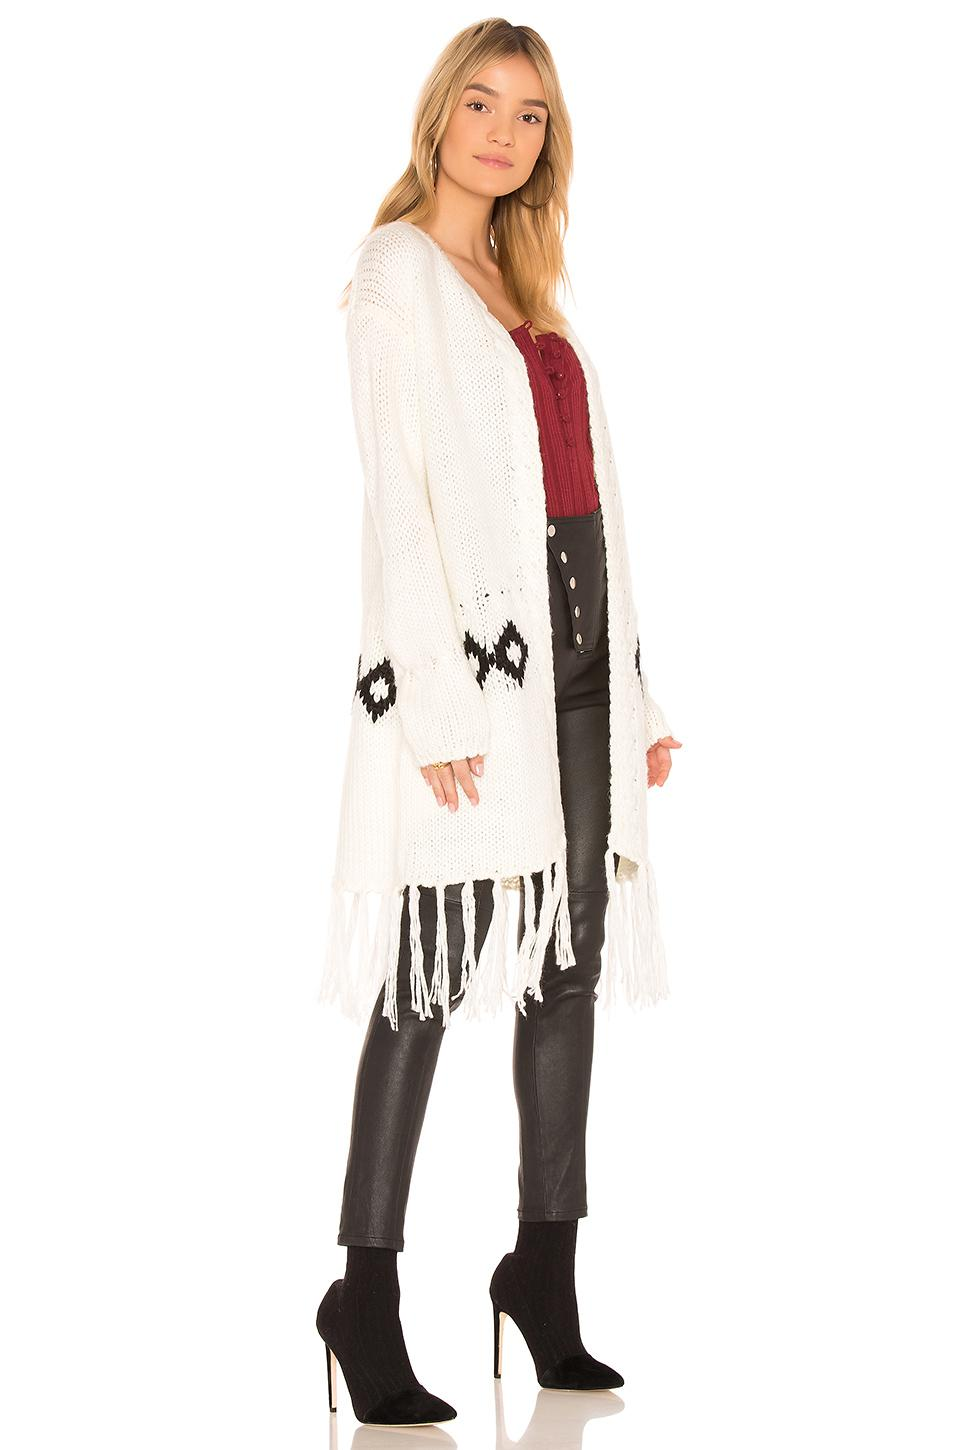 Minkpink Fringe Festive Cardigan Sweater Best Authentic Buy Cheap Best Wholesale Pay With Paypal For Sale With Paypal eaQ6KQXe